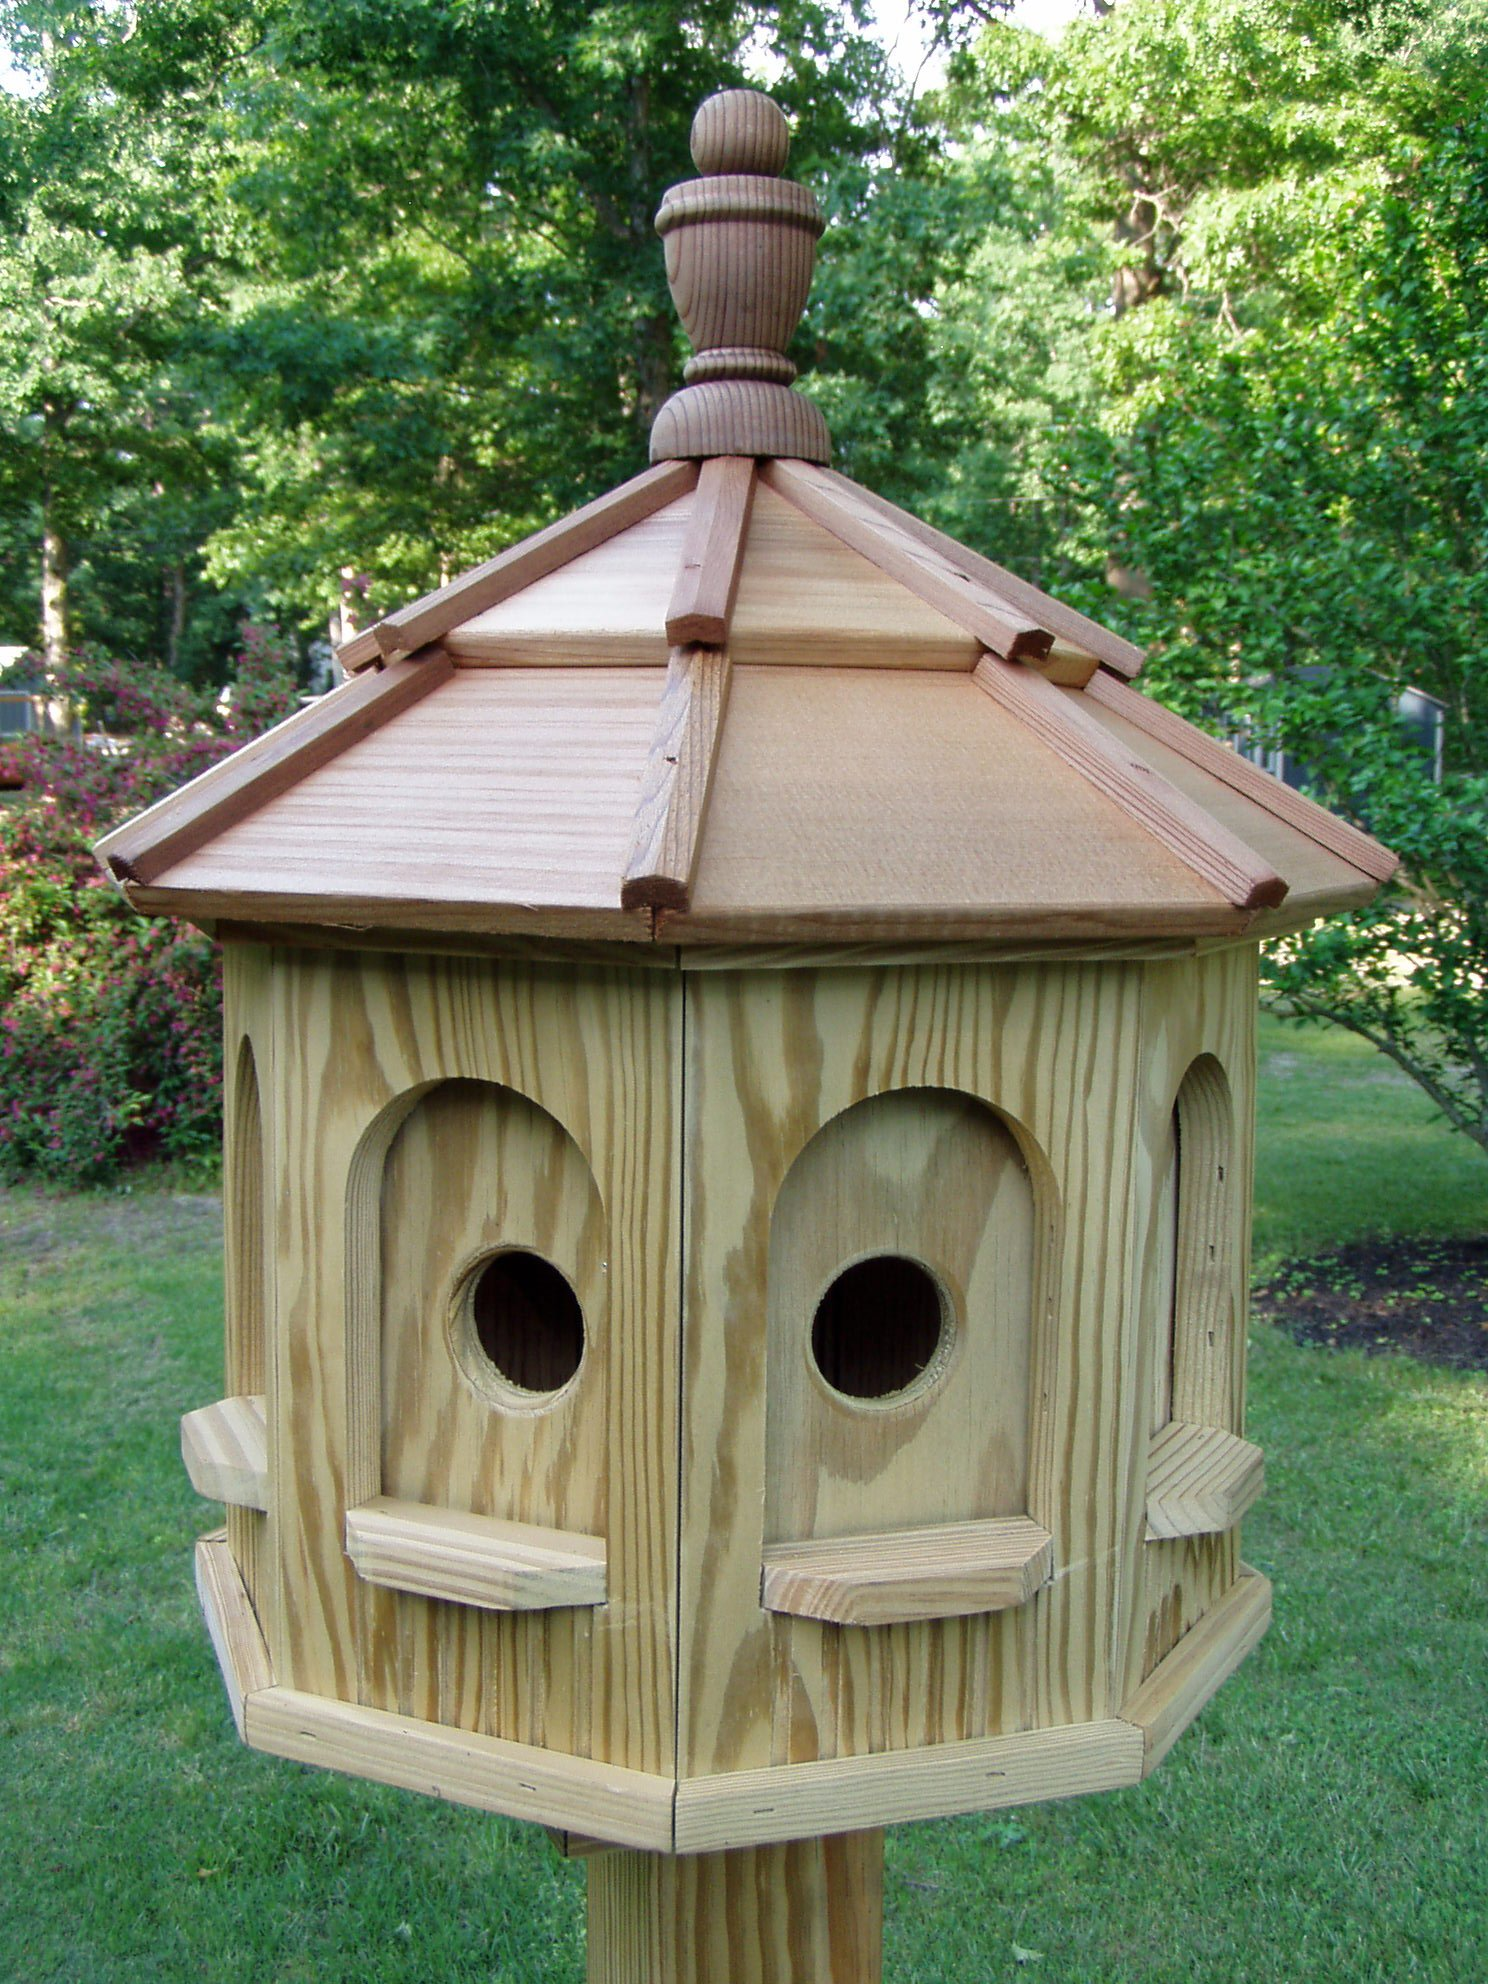 Wood Birdhouse Amish Homemade Handmade Handcrafted Medium by Amish Crafted